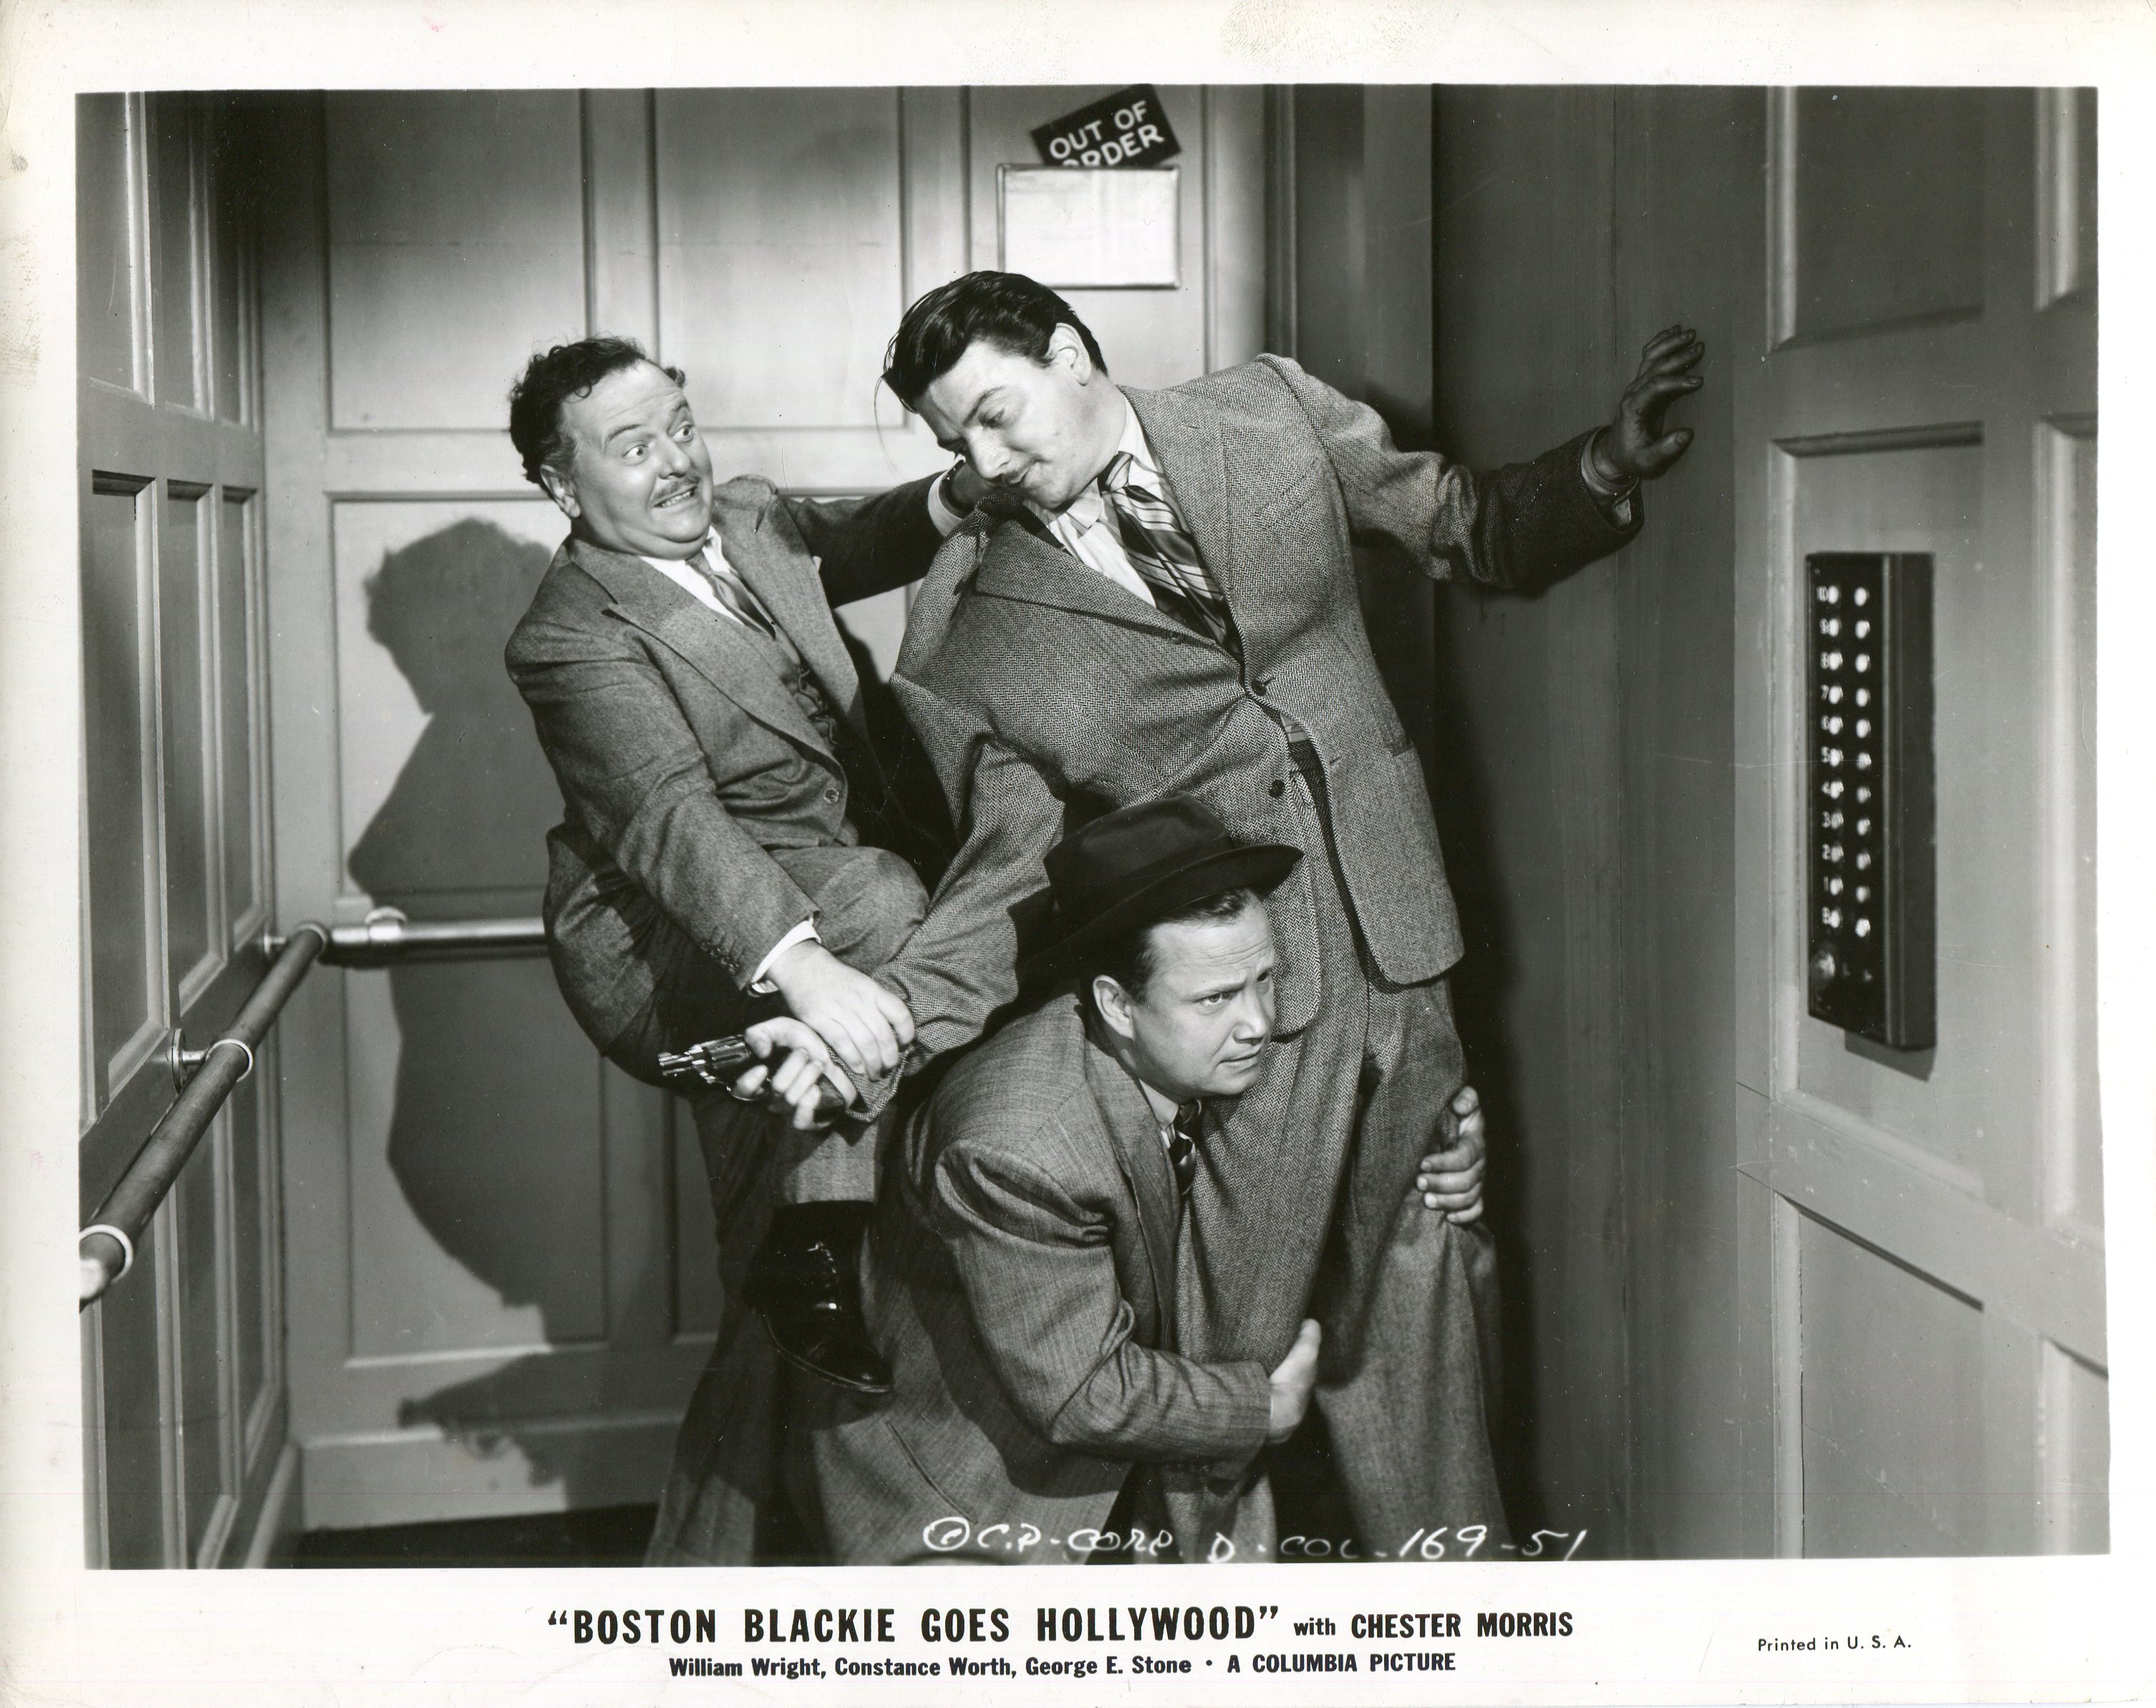 Lloyd Corrigan, George E. Stone, and William Wright in Boston Blackie Goes Hollywood (1942)